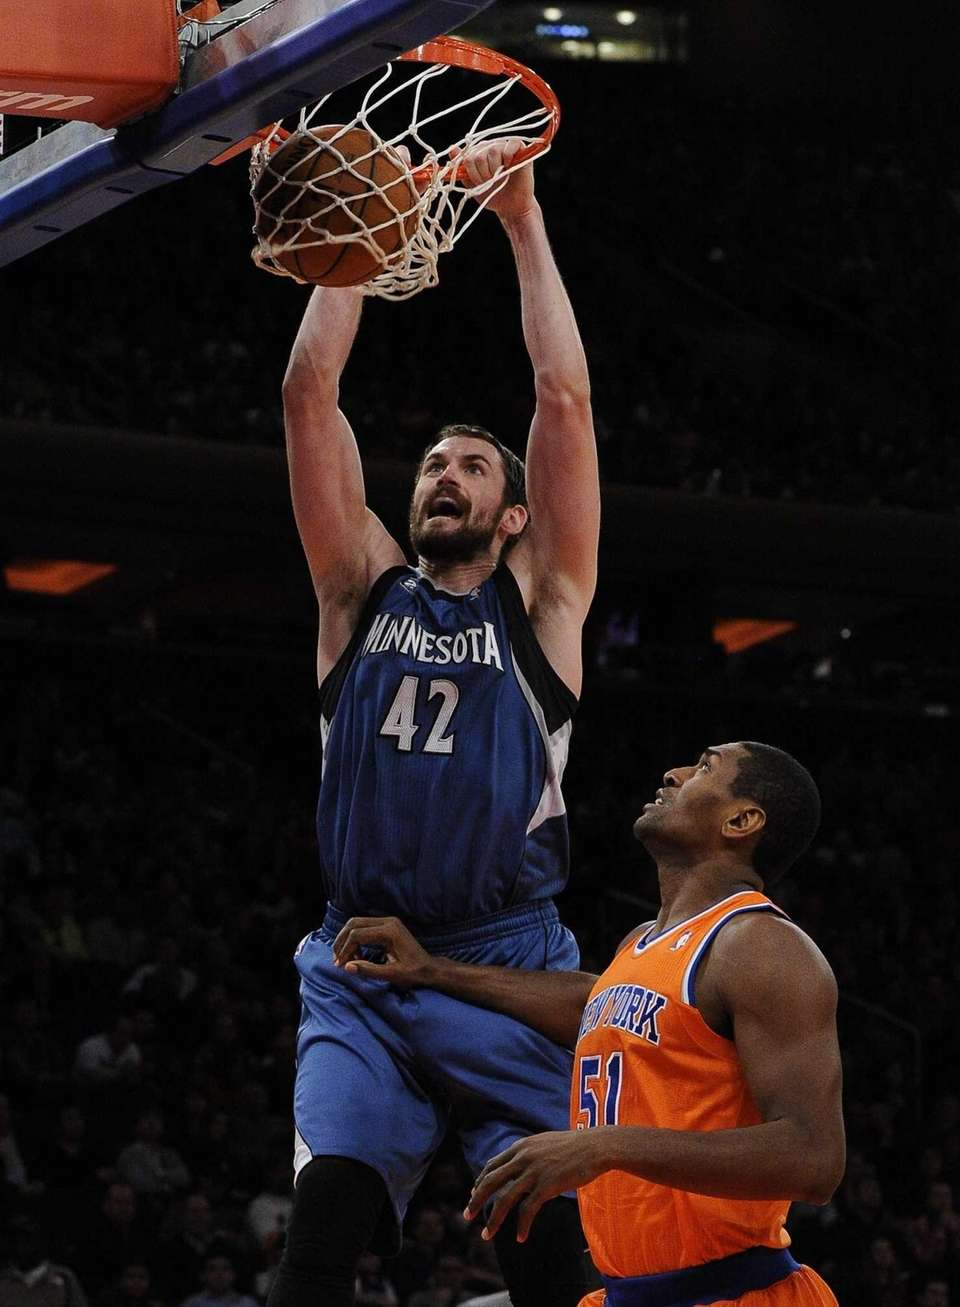 Minnesota Timberwolves forward Kevin Love dunks over Knicks